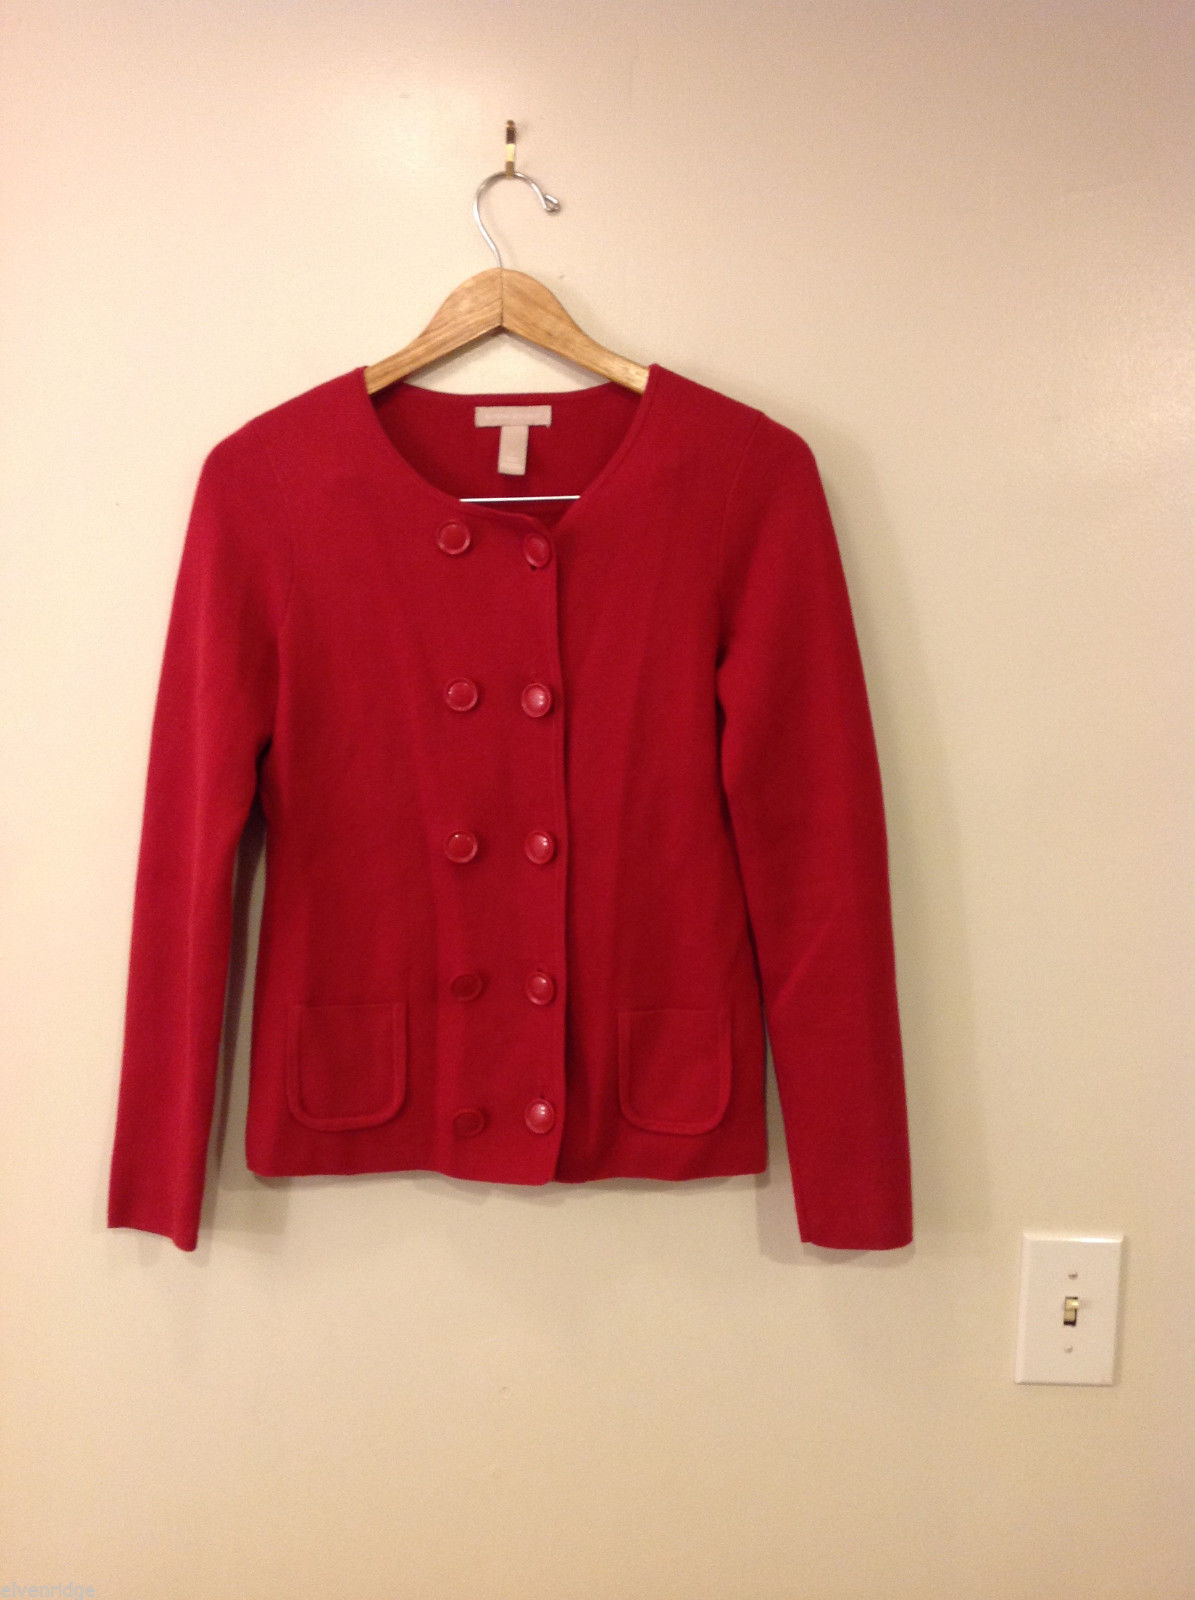 Banana Republic Size S Womens Double Breasted Red Cardigan Cotton Cashmere Blend